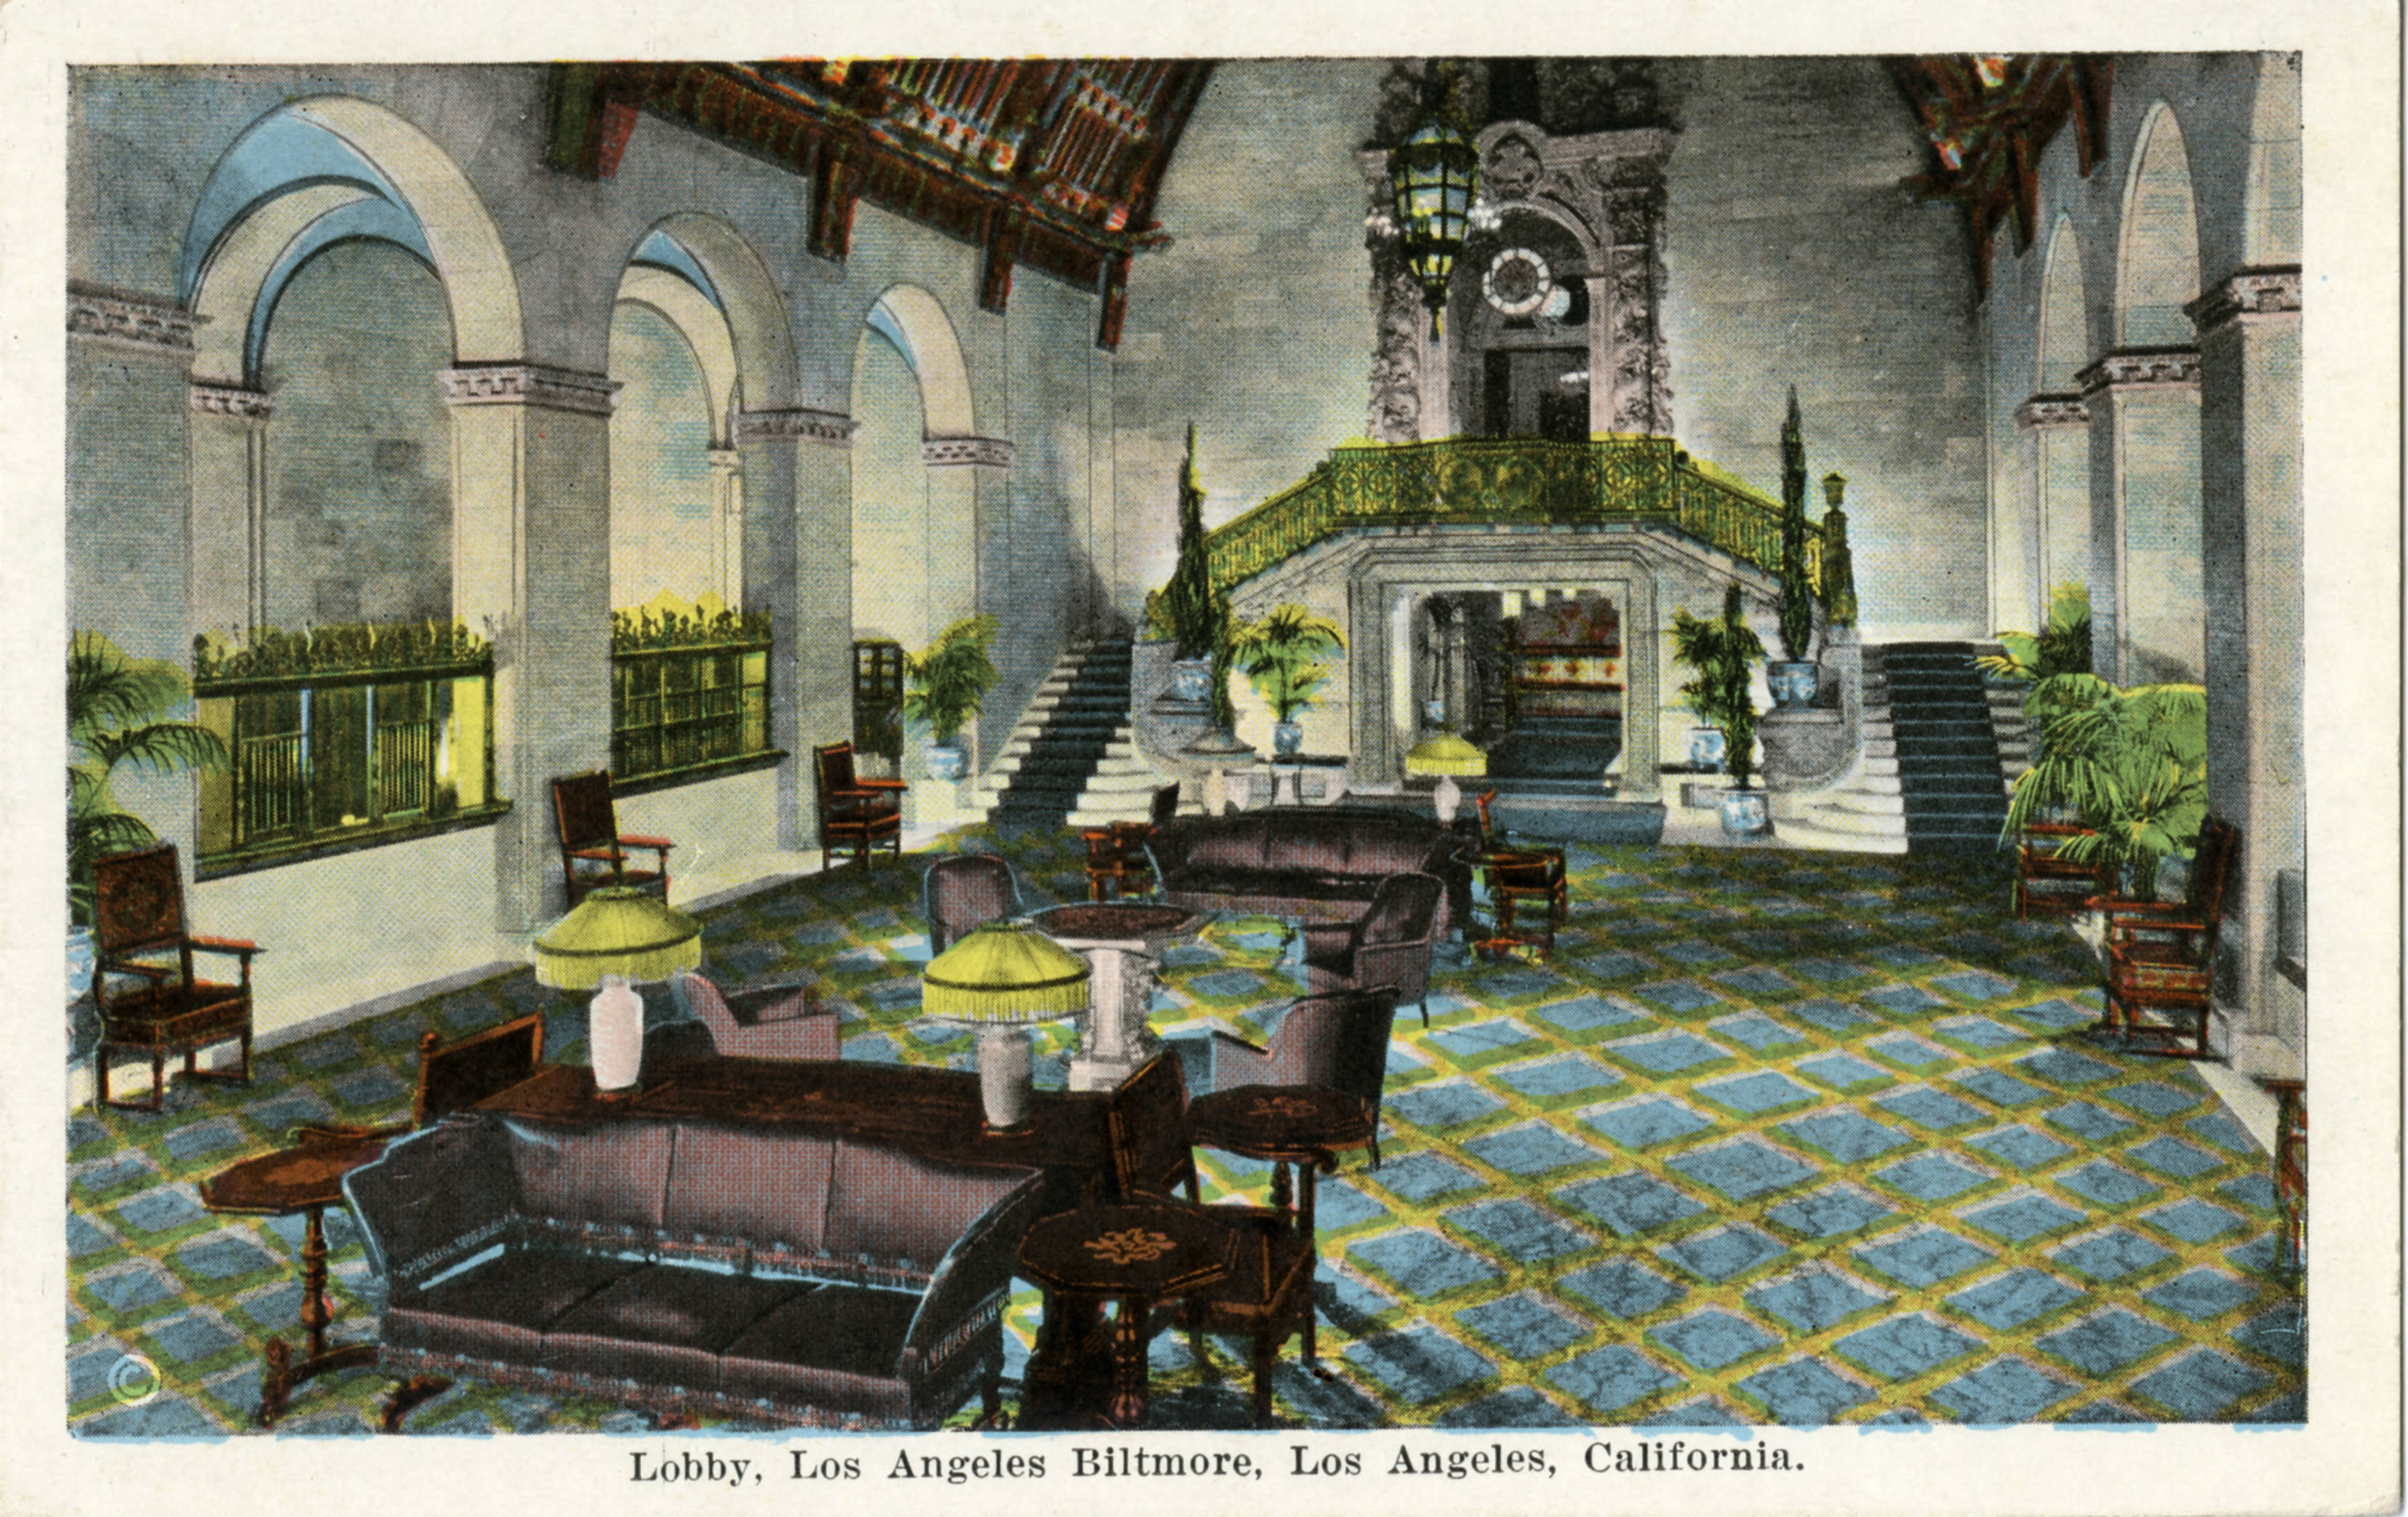 The Los Angeles Hotels Where Gangsters and Stars Rubbed Shoulders